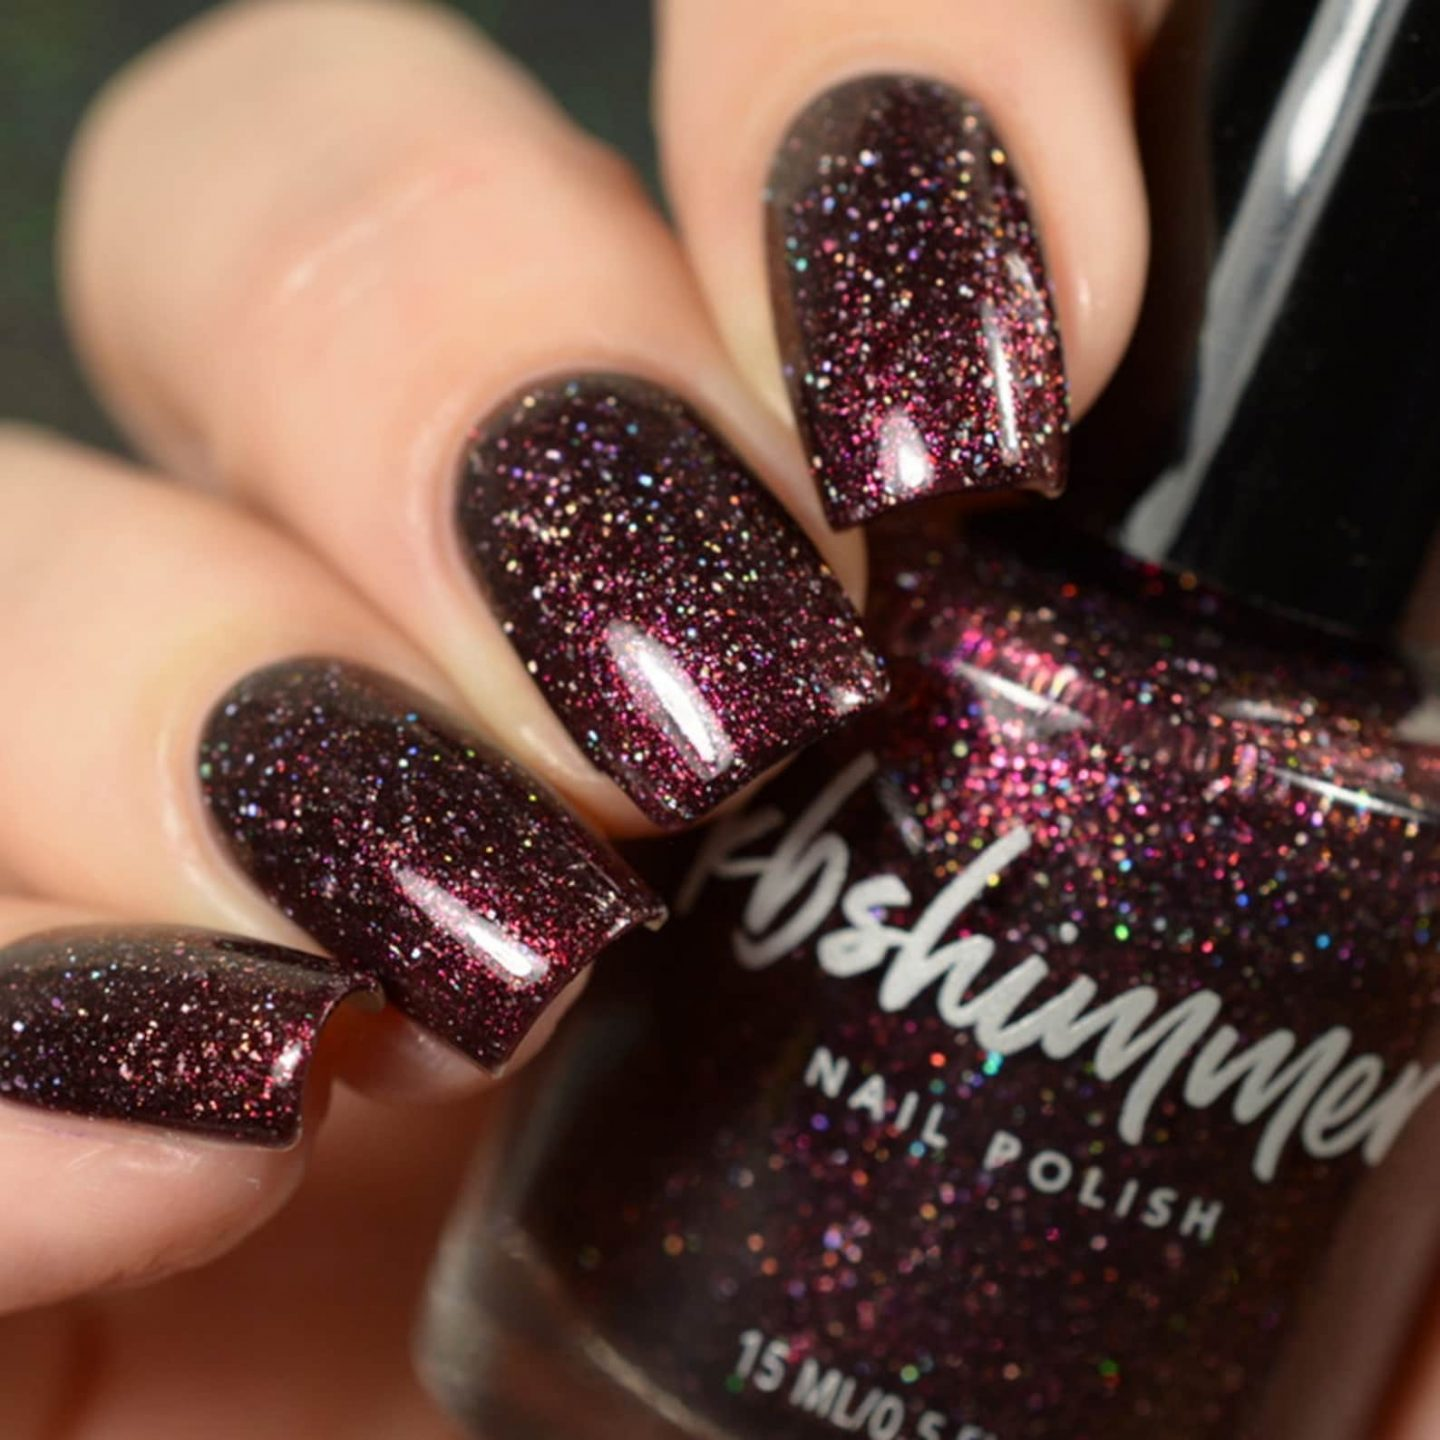 Holographic and iridescent maroon nail polish with glitter